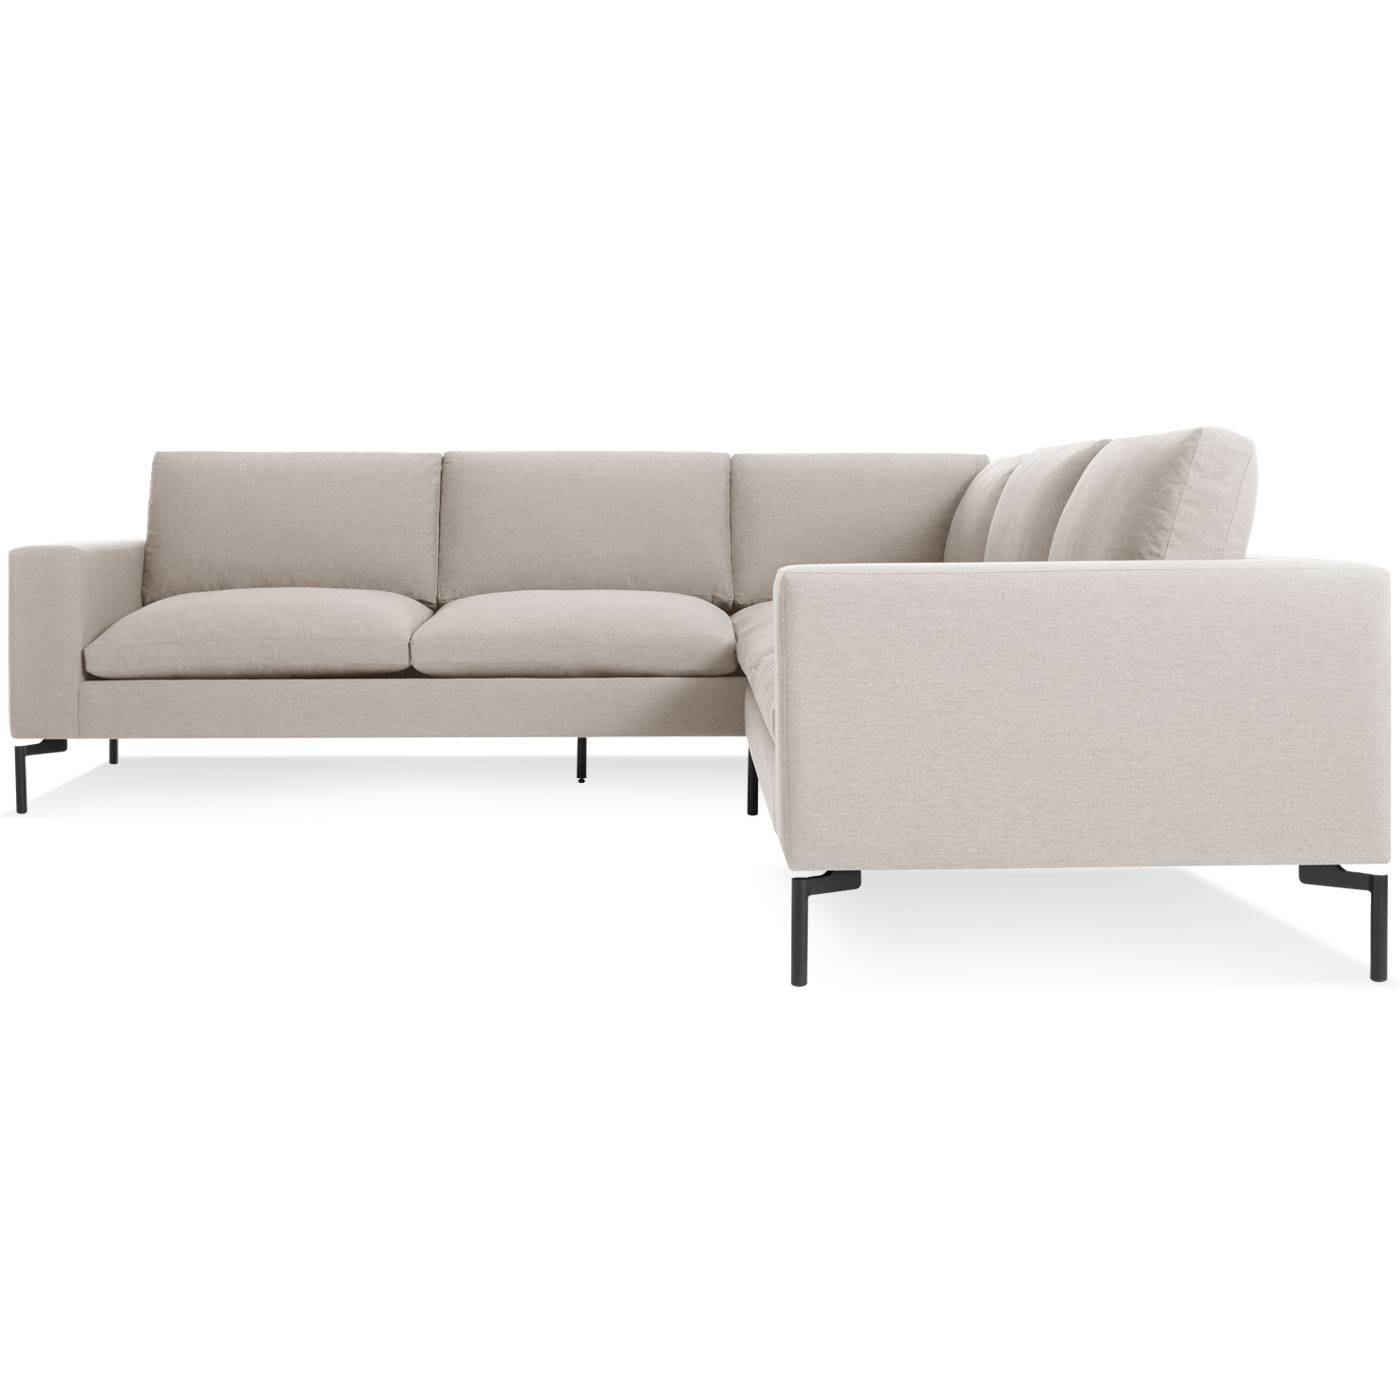 Sofas Center : Smallctional Sofa With Chaise Contemporarysmall intended for Sofas With Lights (Image 25 of 30)